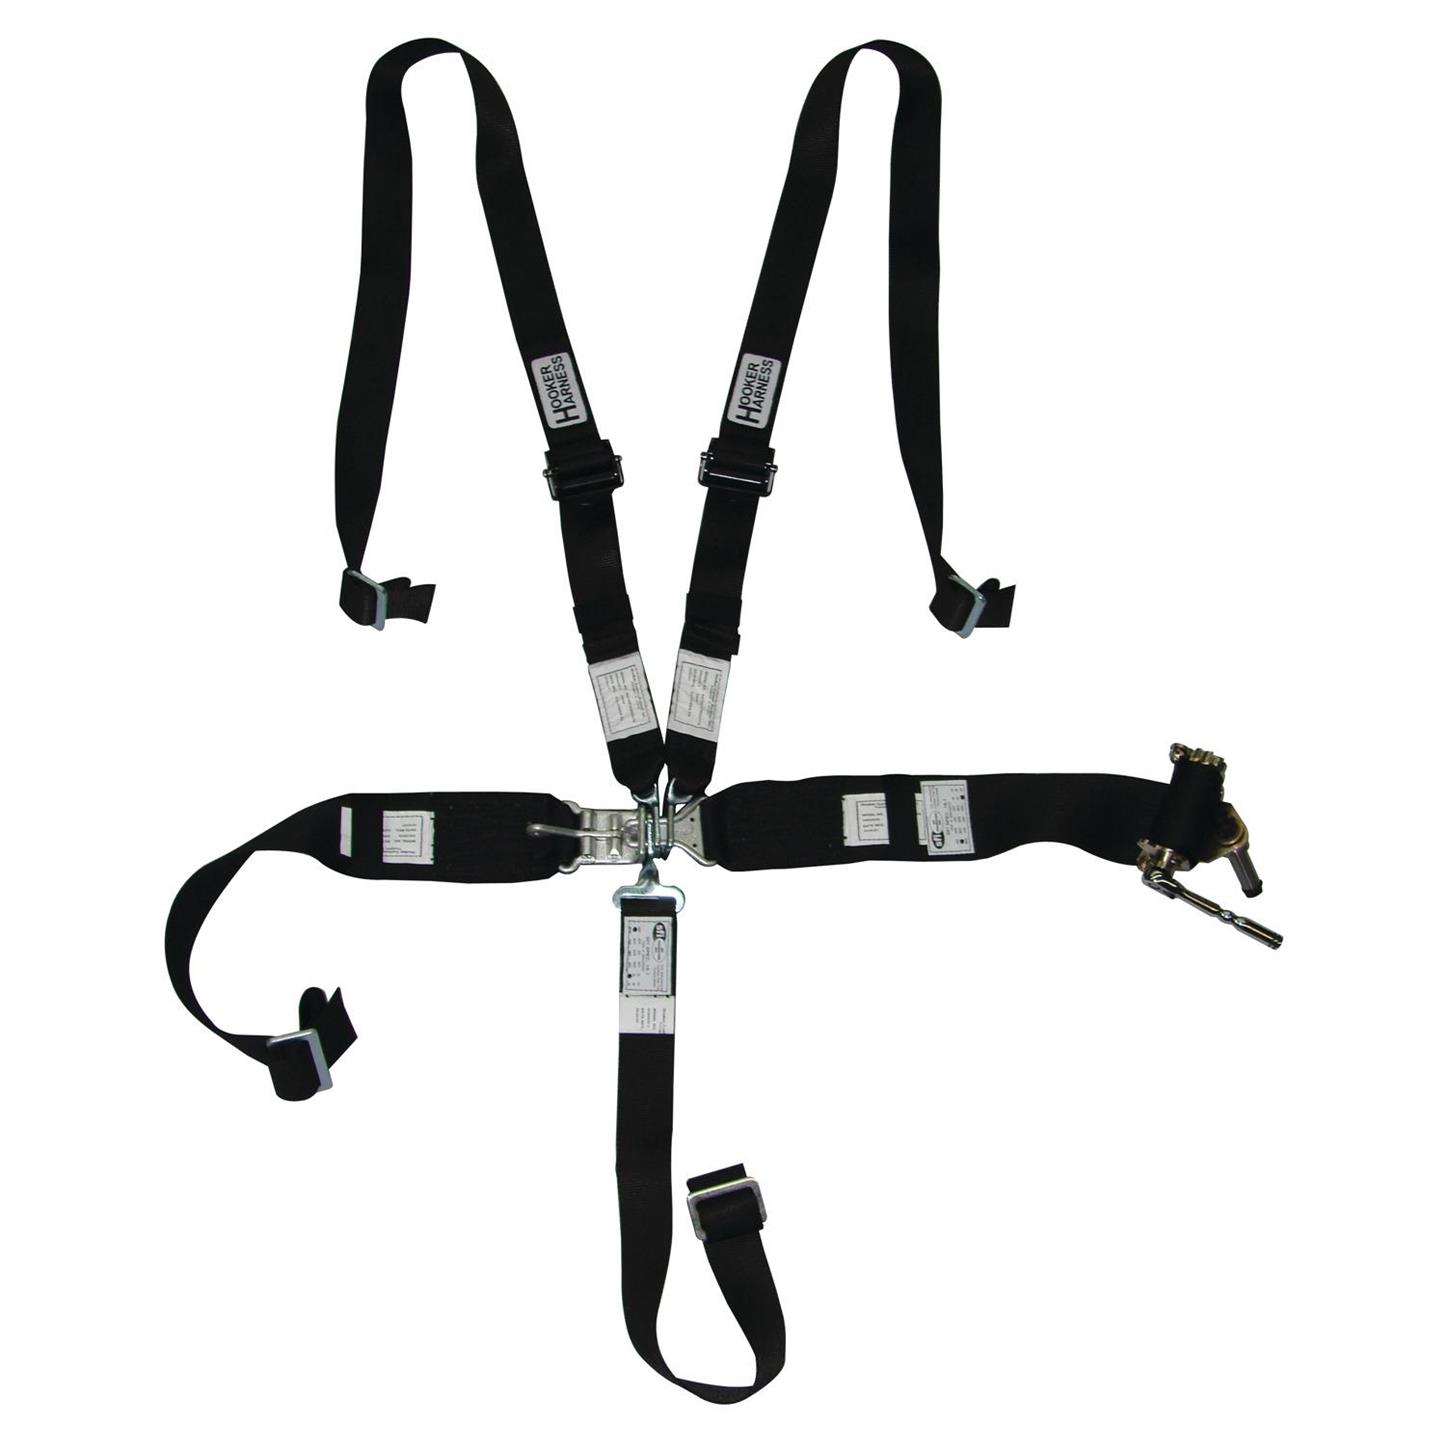 Safety Belt Hooker Harness 5 Point Latch And Link Safety Belt 2 Inch Shoulder Set